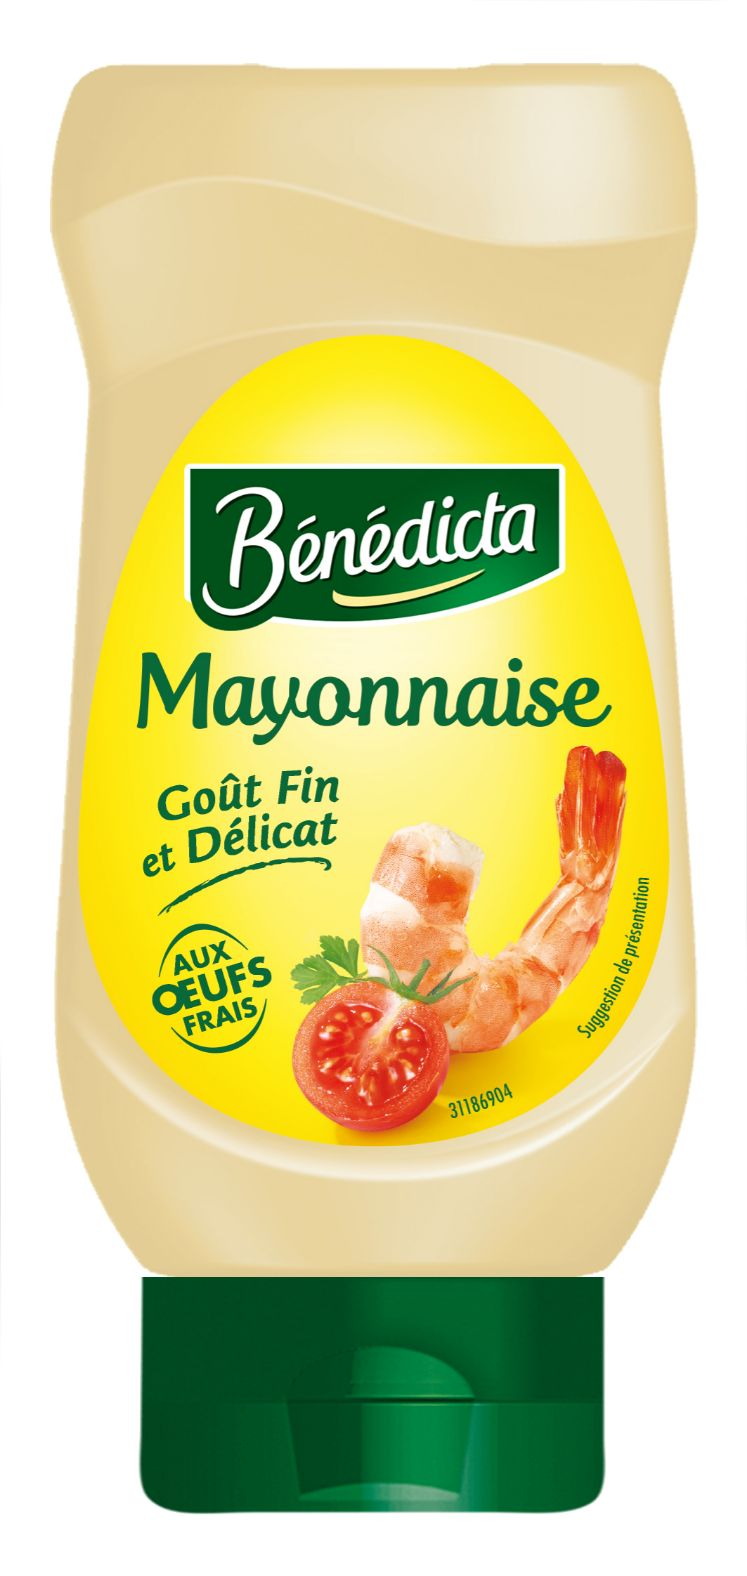 Bénédicta Mayonnaise Nature 400ml Flacon Souple image